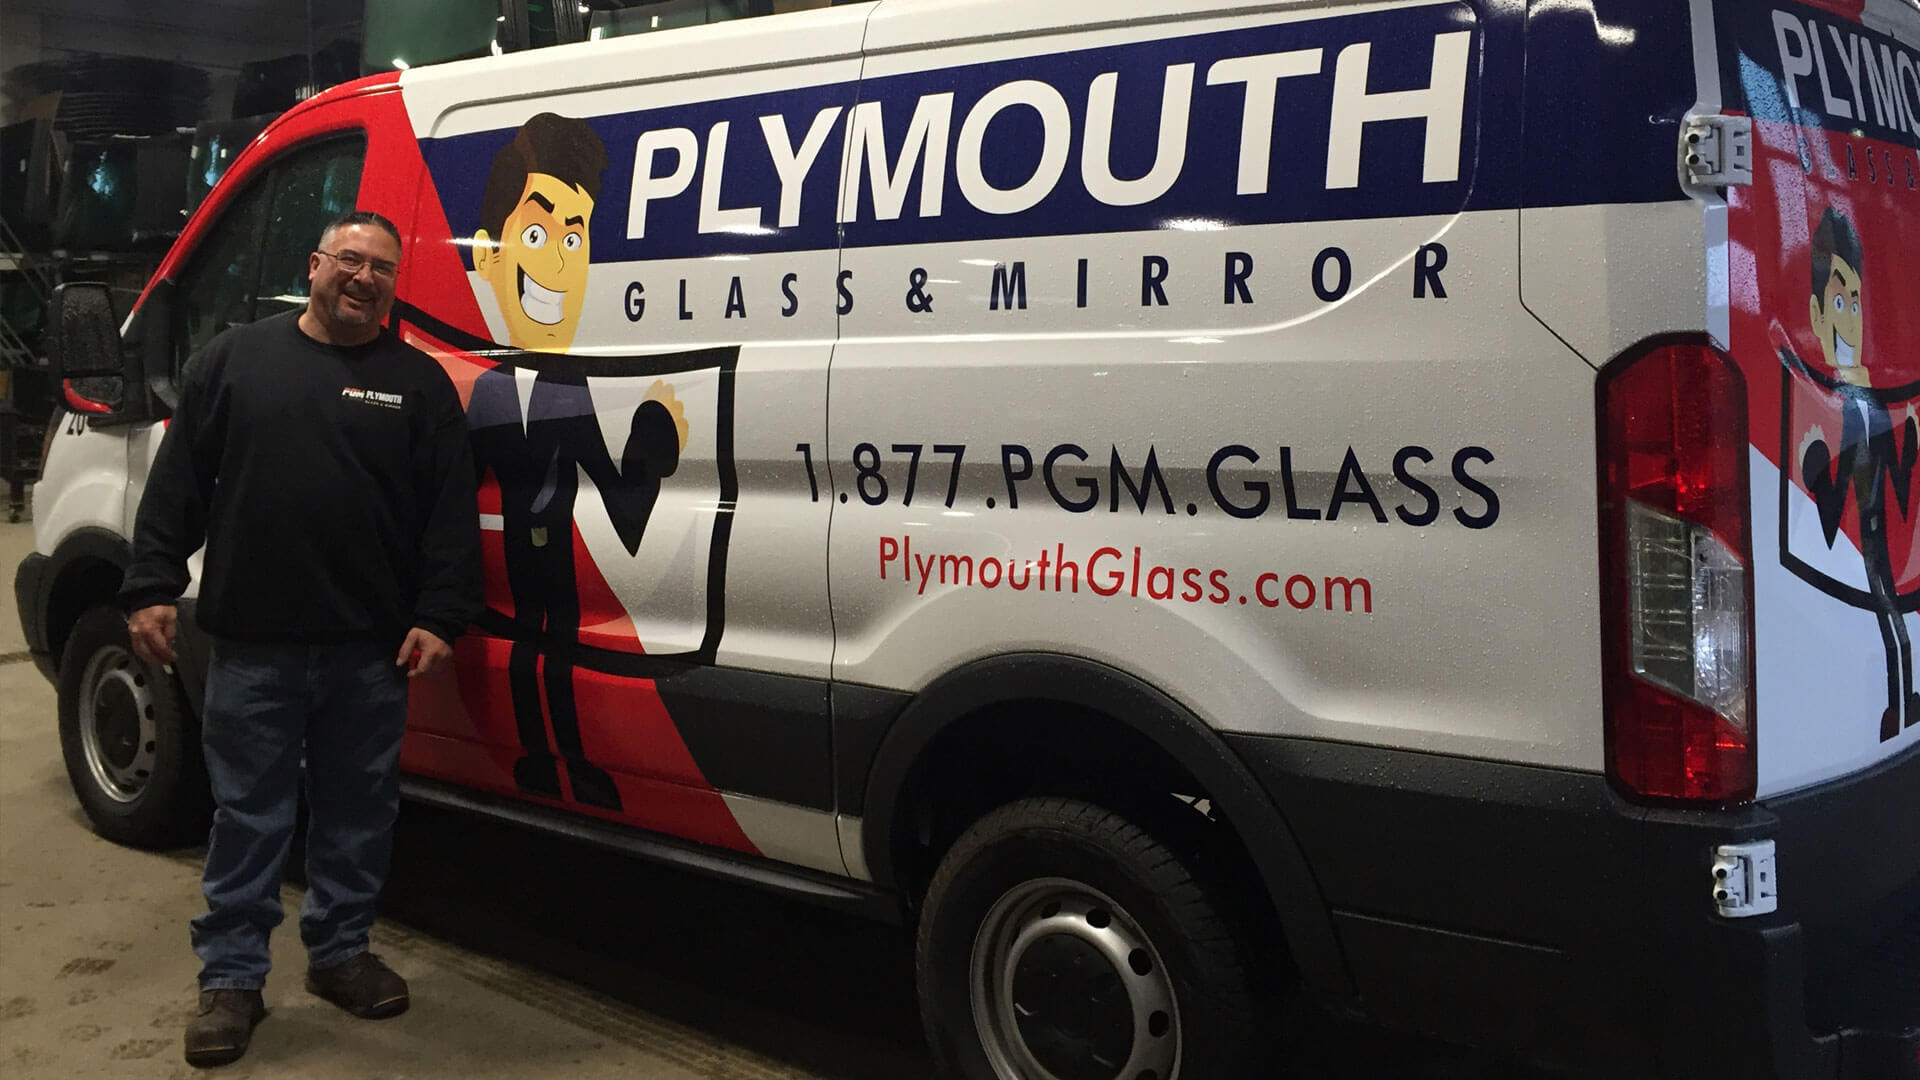 Plymouth Glass and Mirror